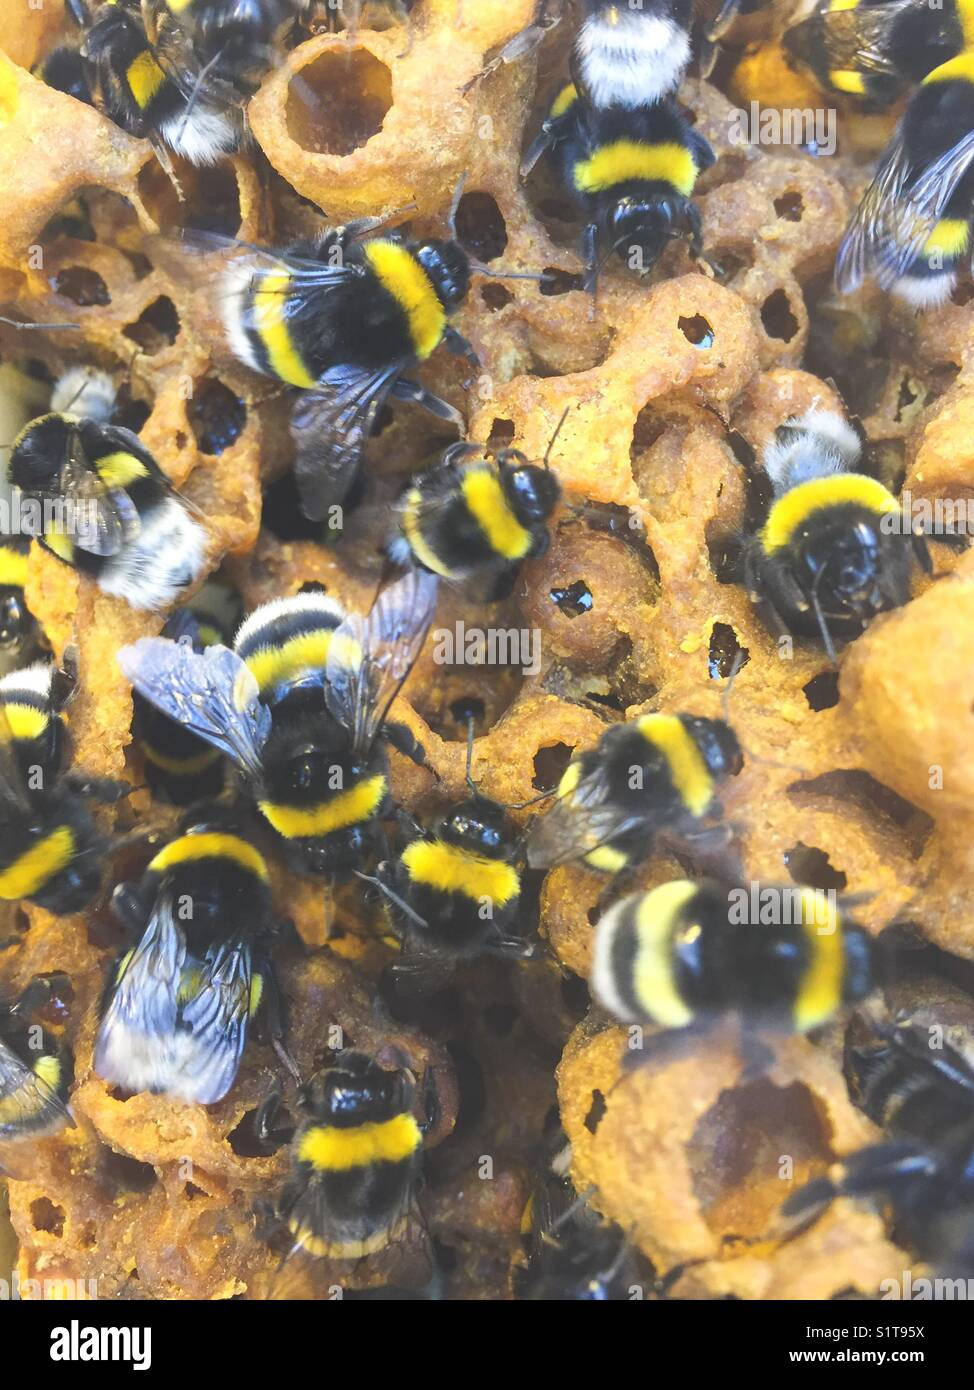 Pollinating bees in bee hive close up - Stock Image